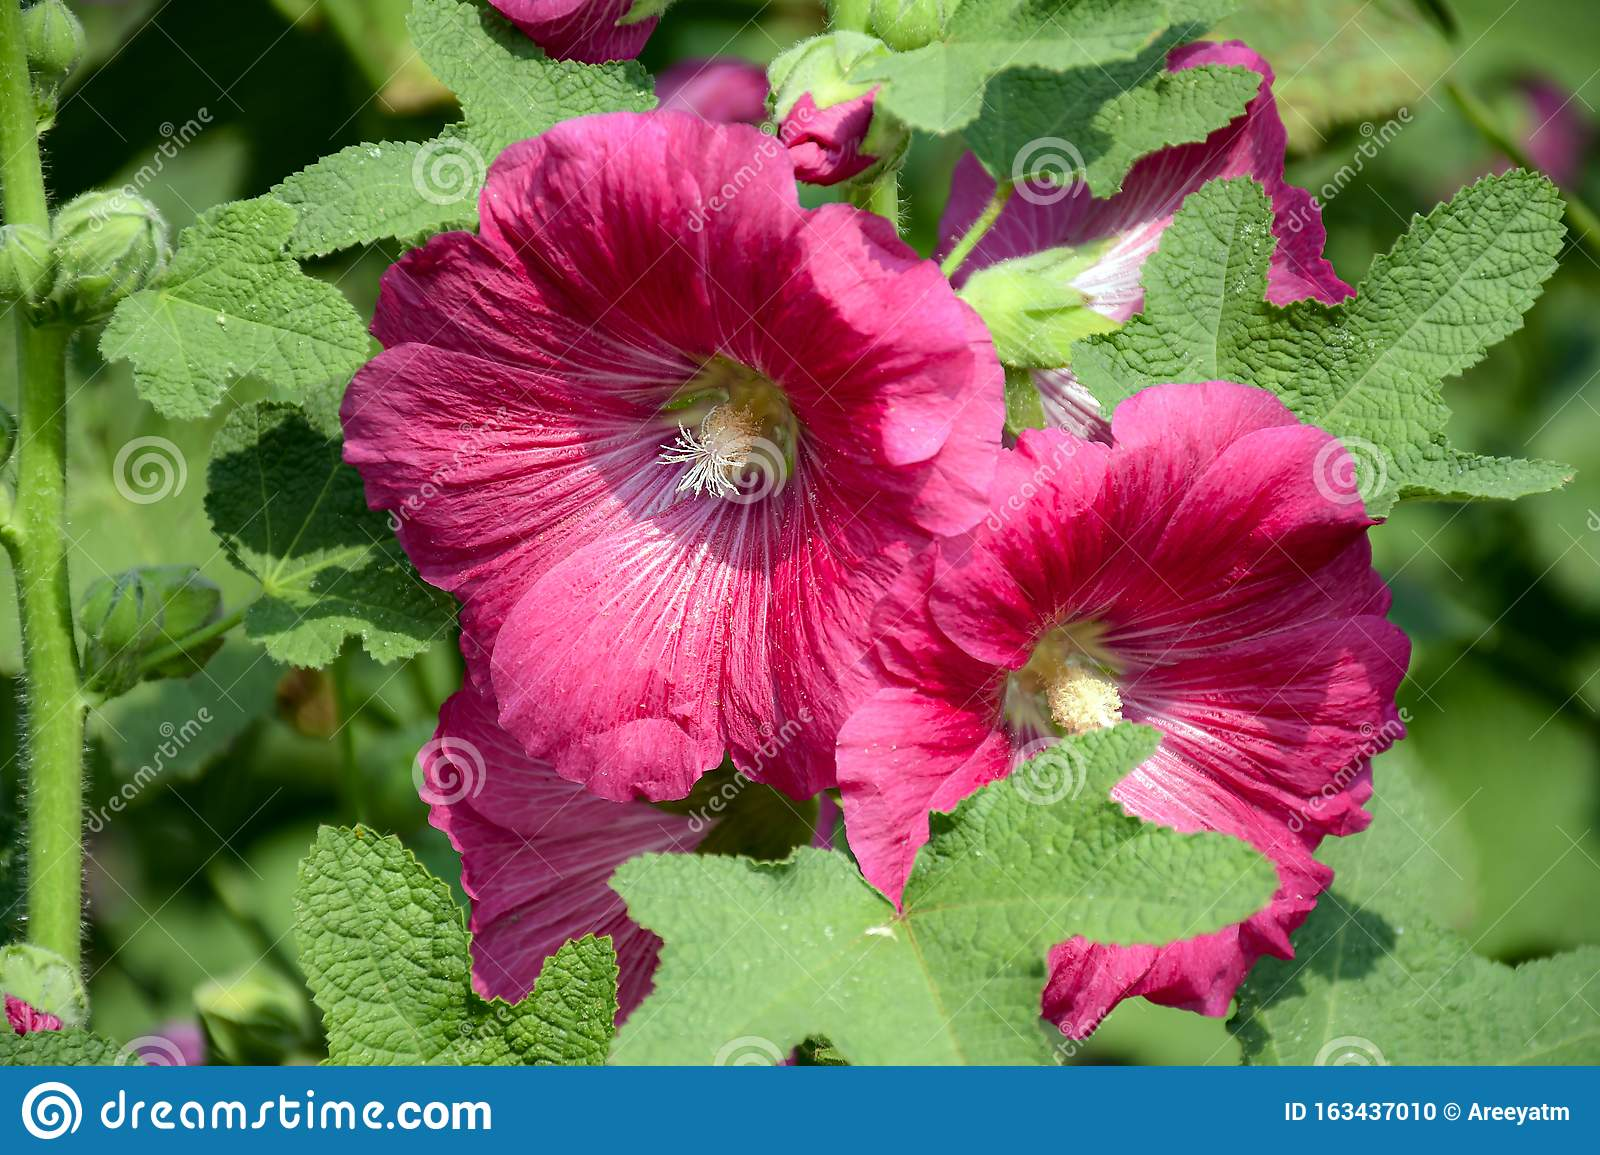 Alcea rosea, the common hollyhock, is an ornamental plant in the family Malvaceae